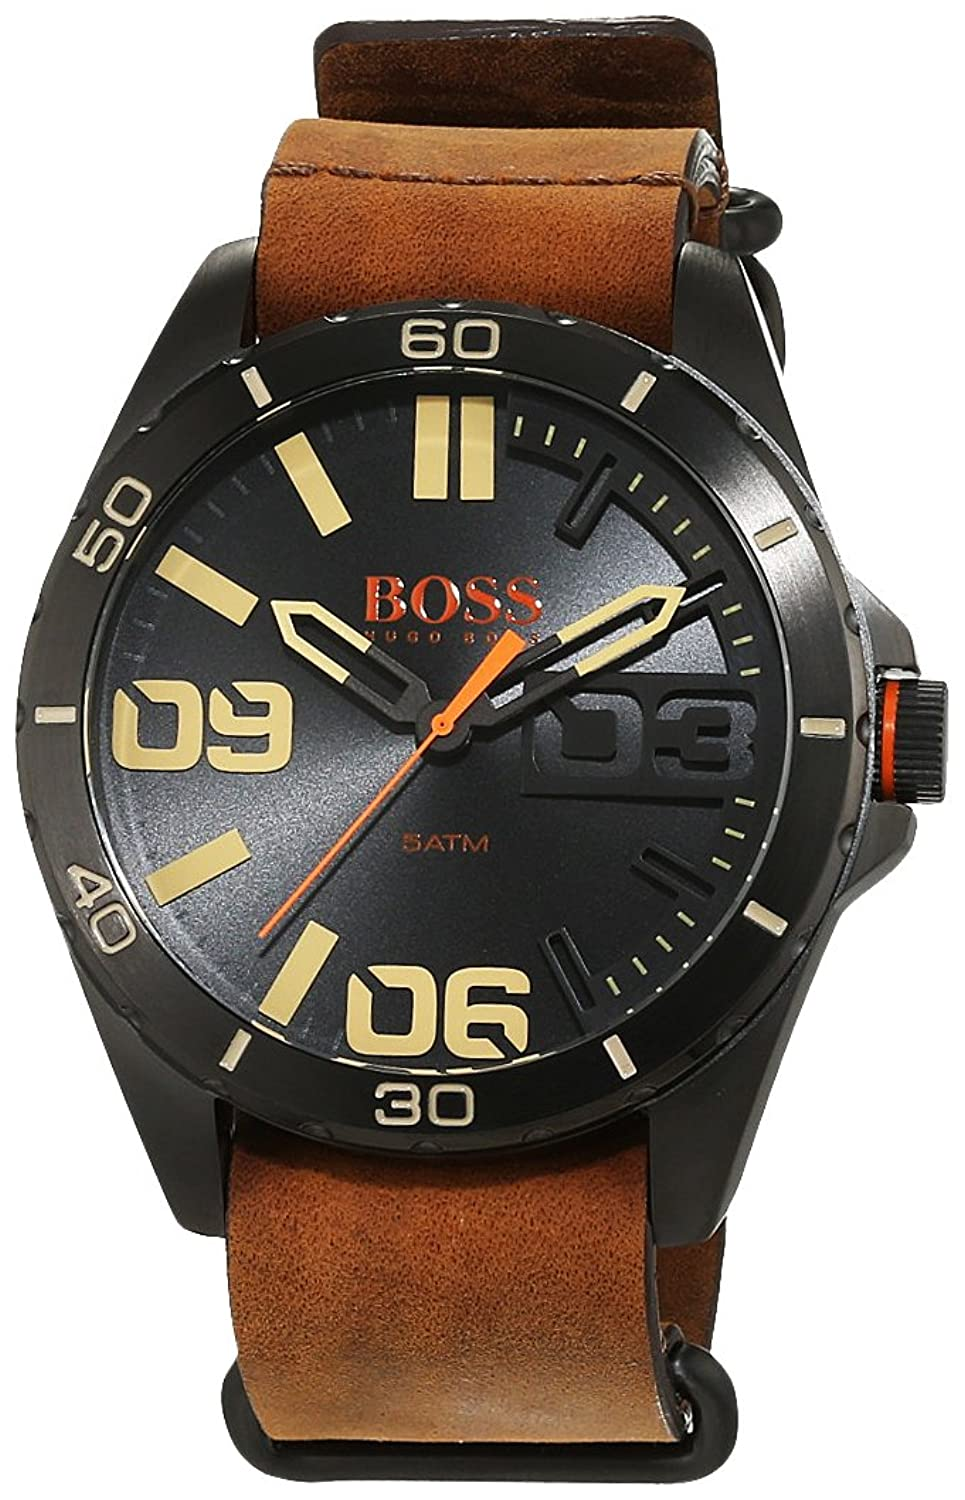 BOSS Orange Herren-Armbanduhr Analog Quarz Leder 1513316